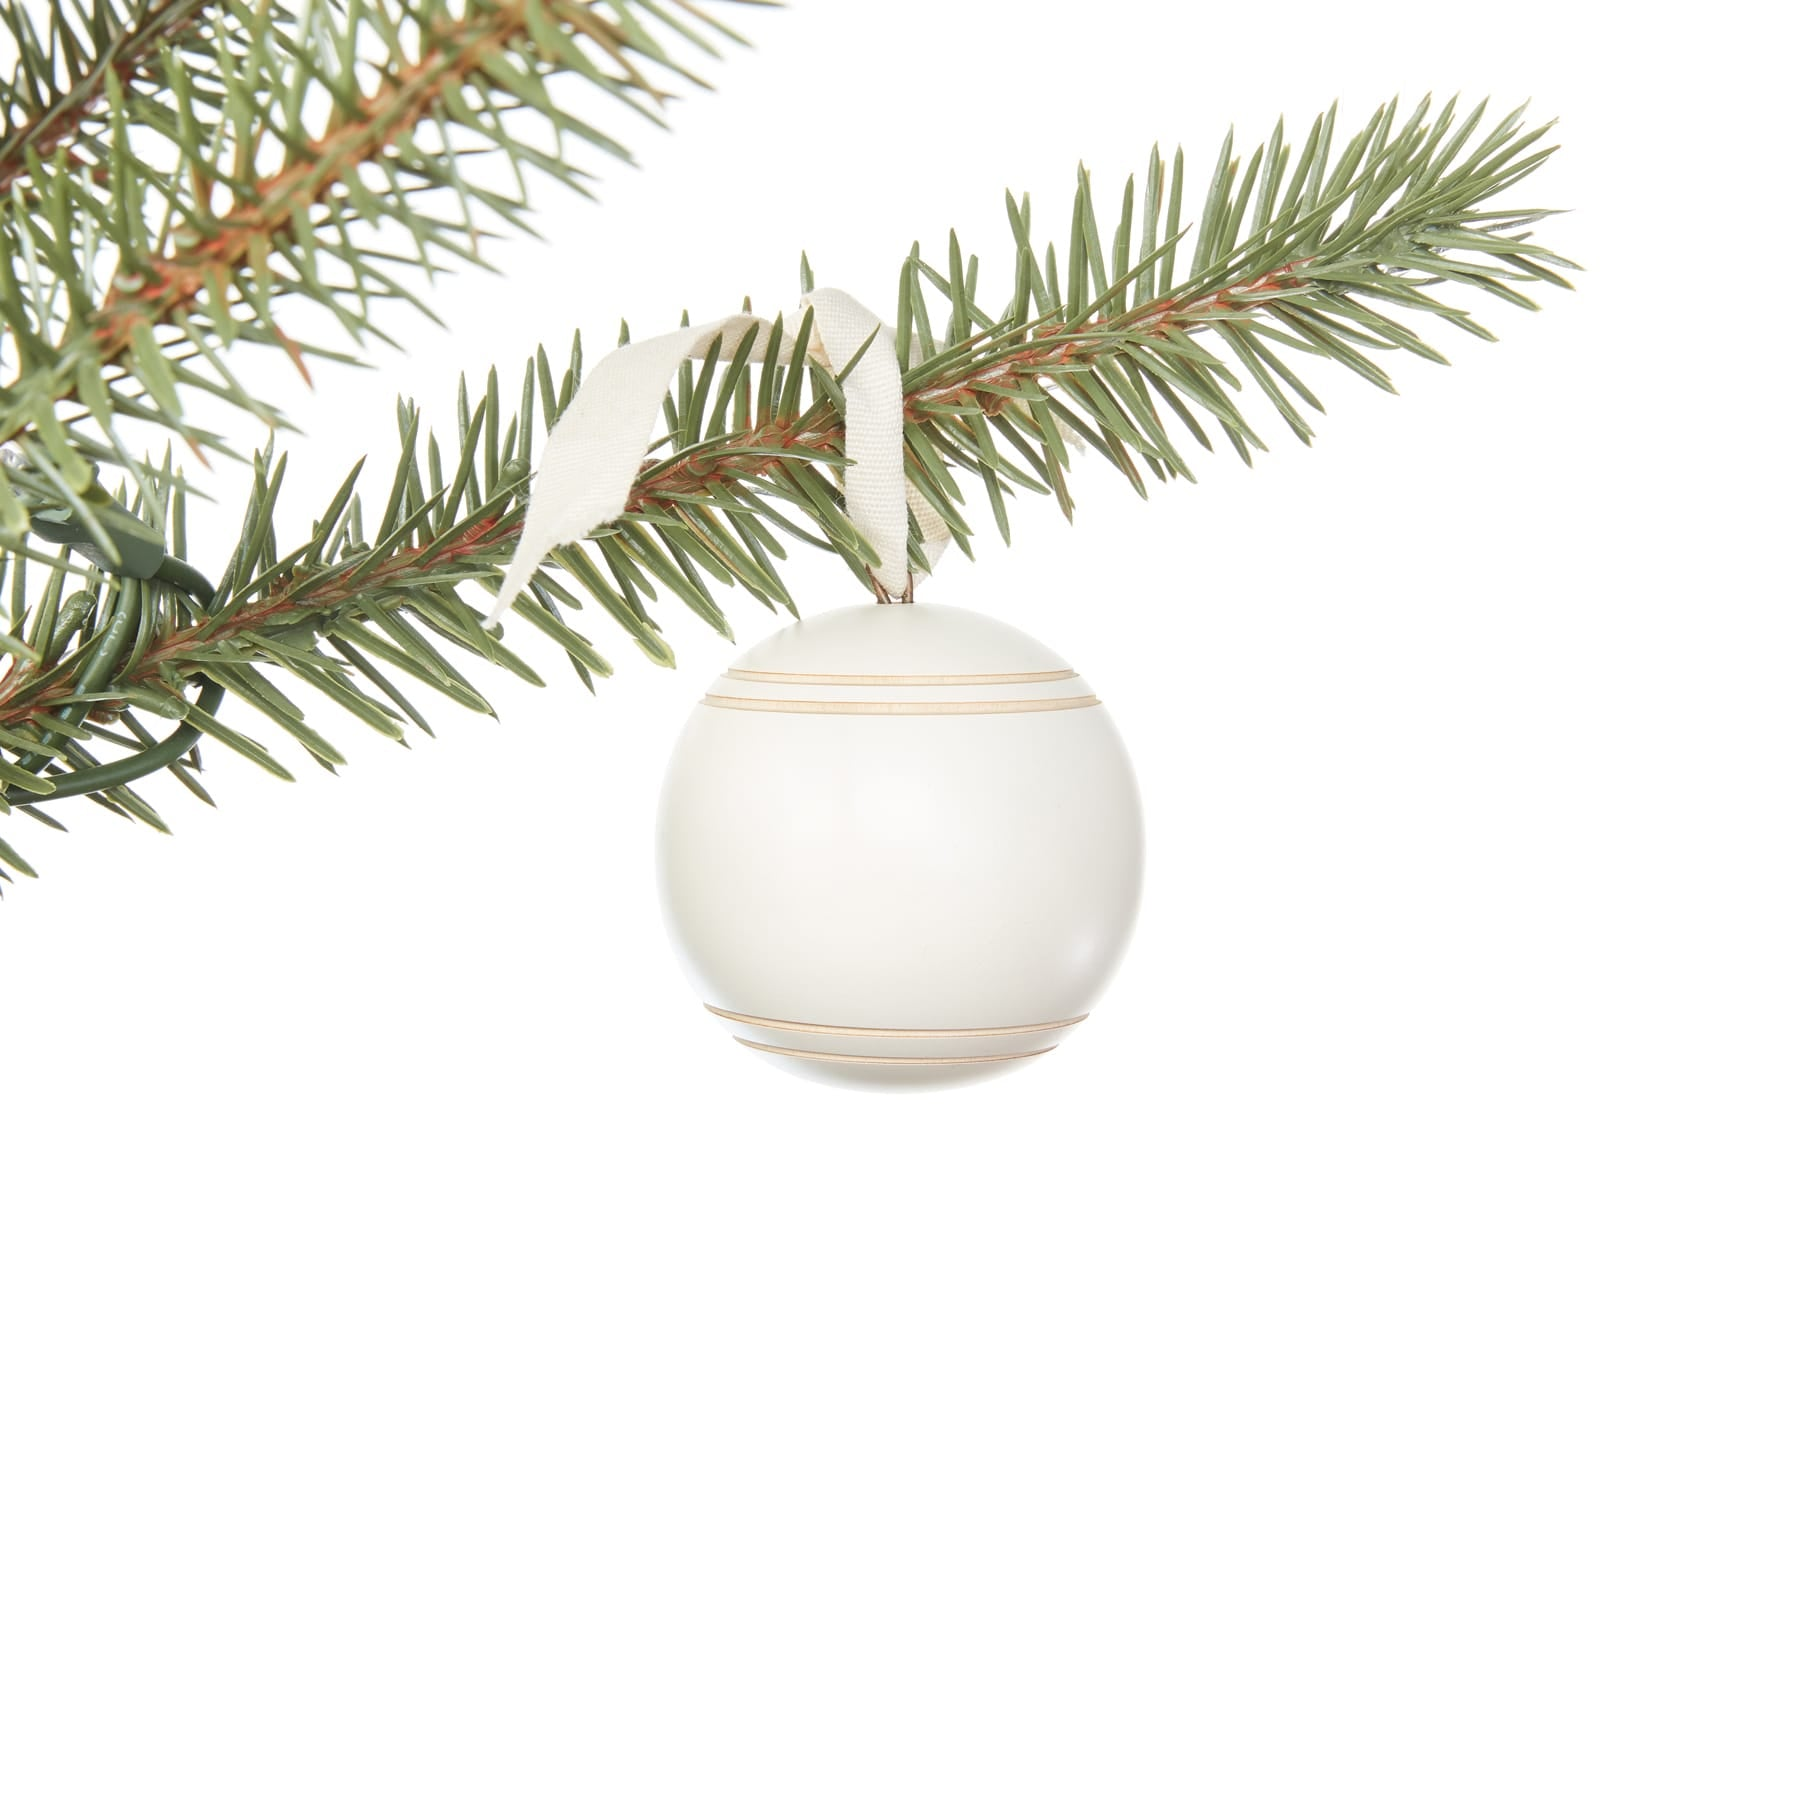 Nova White Ornaments